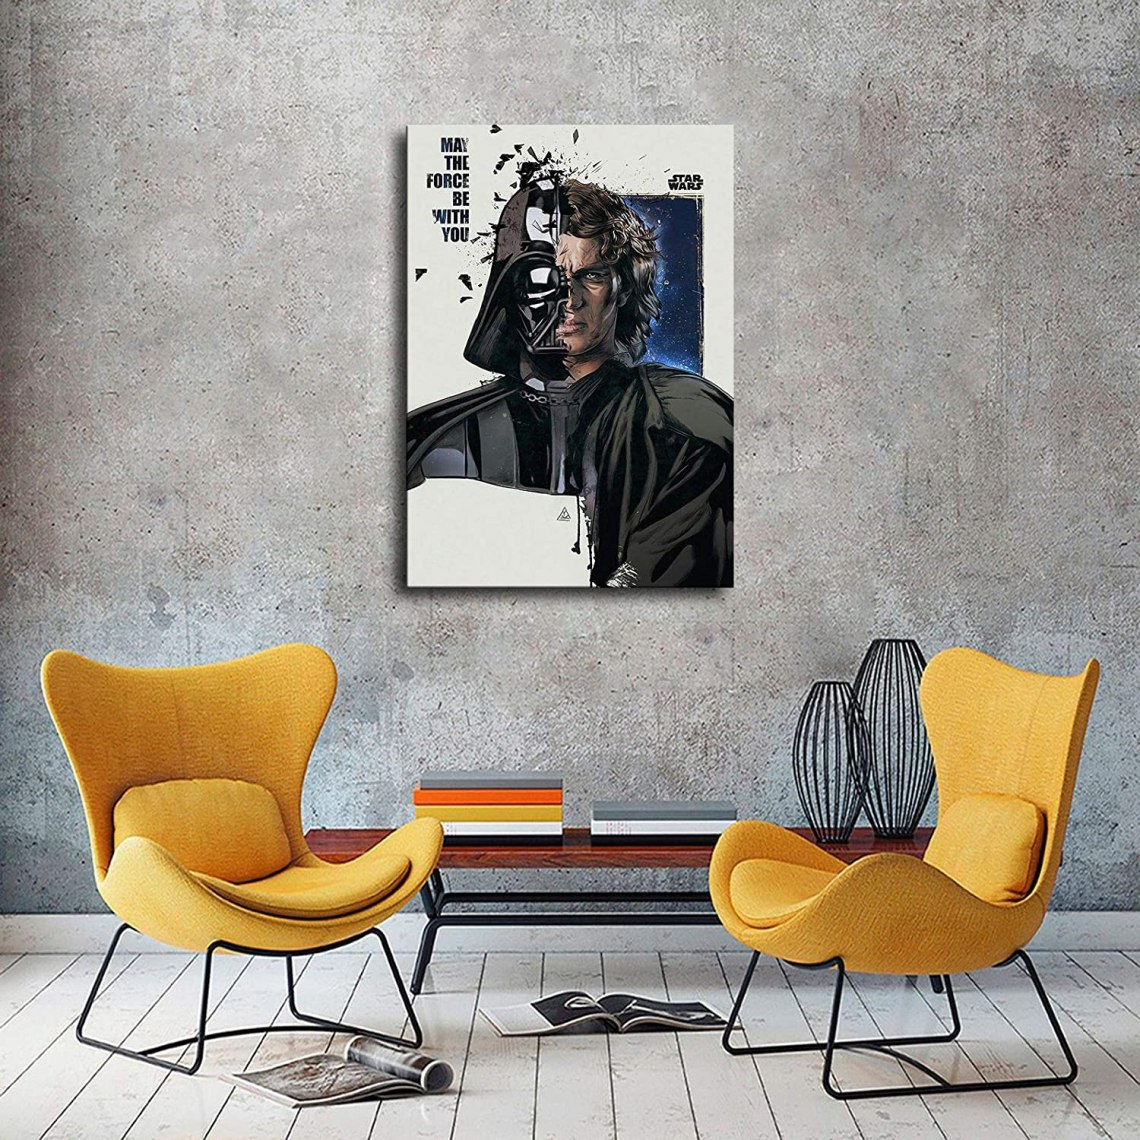 Buy Anakin Skywalker And Darth Vader Character Wallpaper Hd Print Canvas Art Living Room Wall Decoration Room Mural Office Decor Star Wars Posters 24x36inch No Frame Online In Indonesia B08qhtnvsk